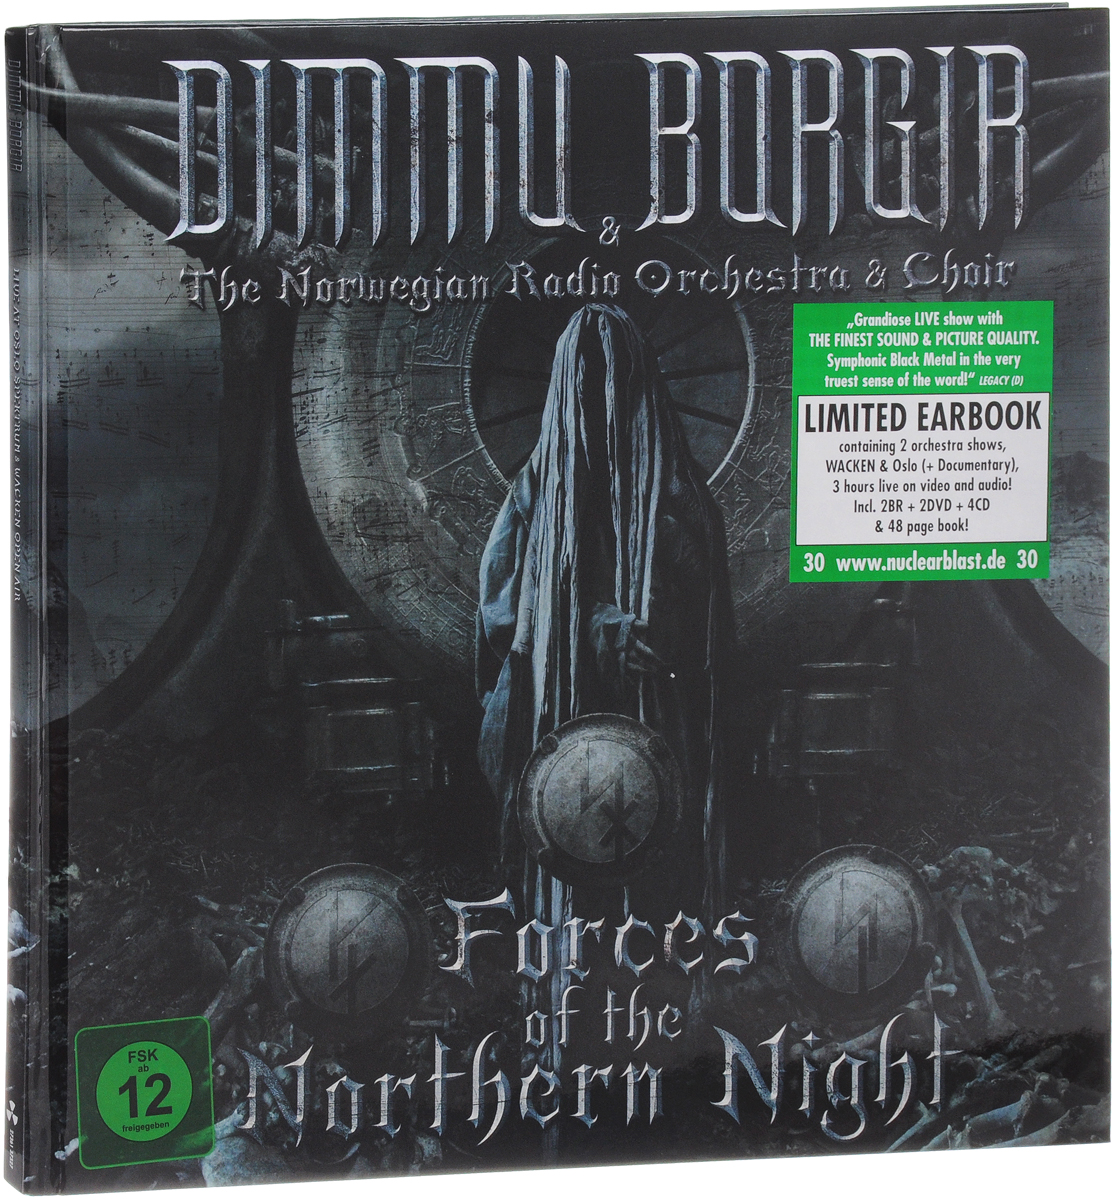 Dimmu Borgir & The Norwegian Radio Orchestra & Choir: Forces Of The Northern Night: Limited Earbook (2 Blu-ray + 2 DVD + 4 CD) dimmu borgir dimmu borgir in sorte diaboli deluxe edition cd dvd